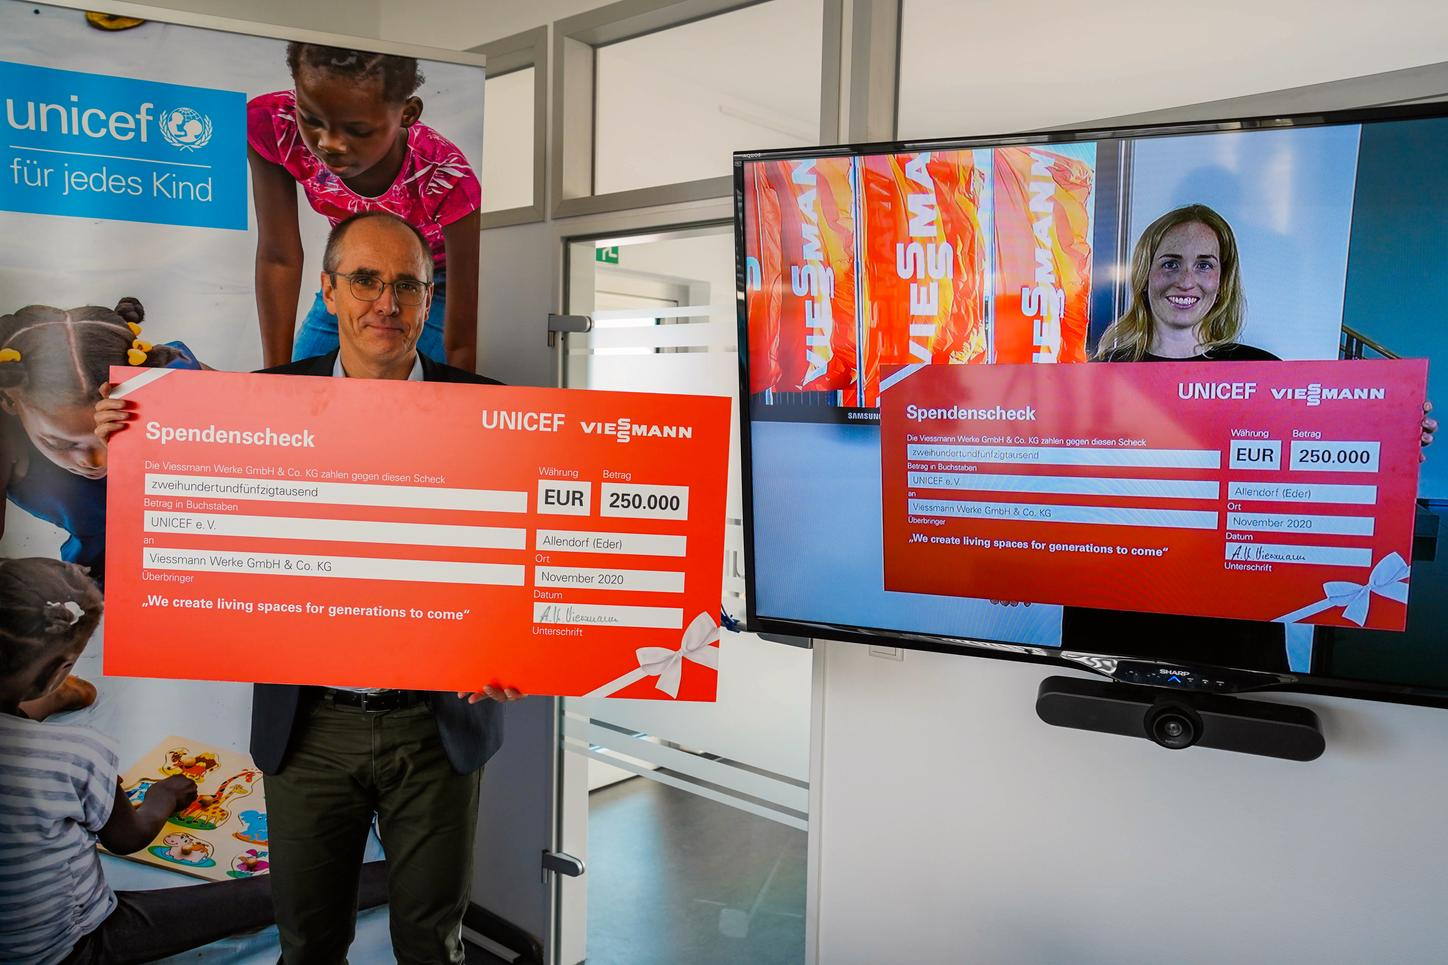 The image shows Katharina Viessmann and Unicef Managing Director Christian Schneider at the virtual check presentation.